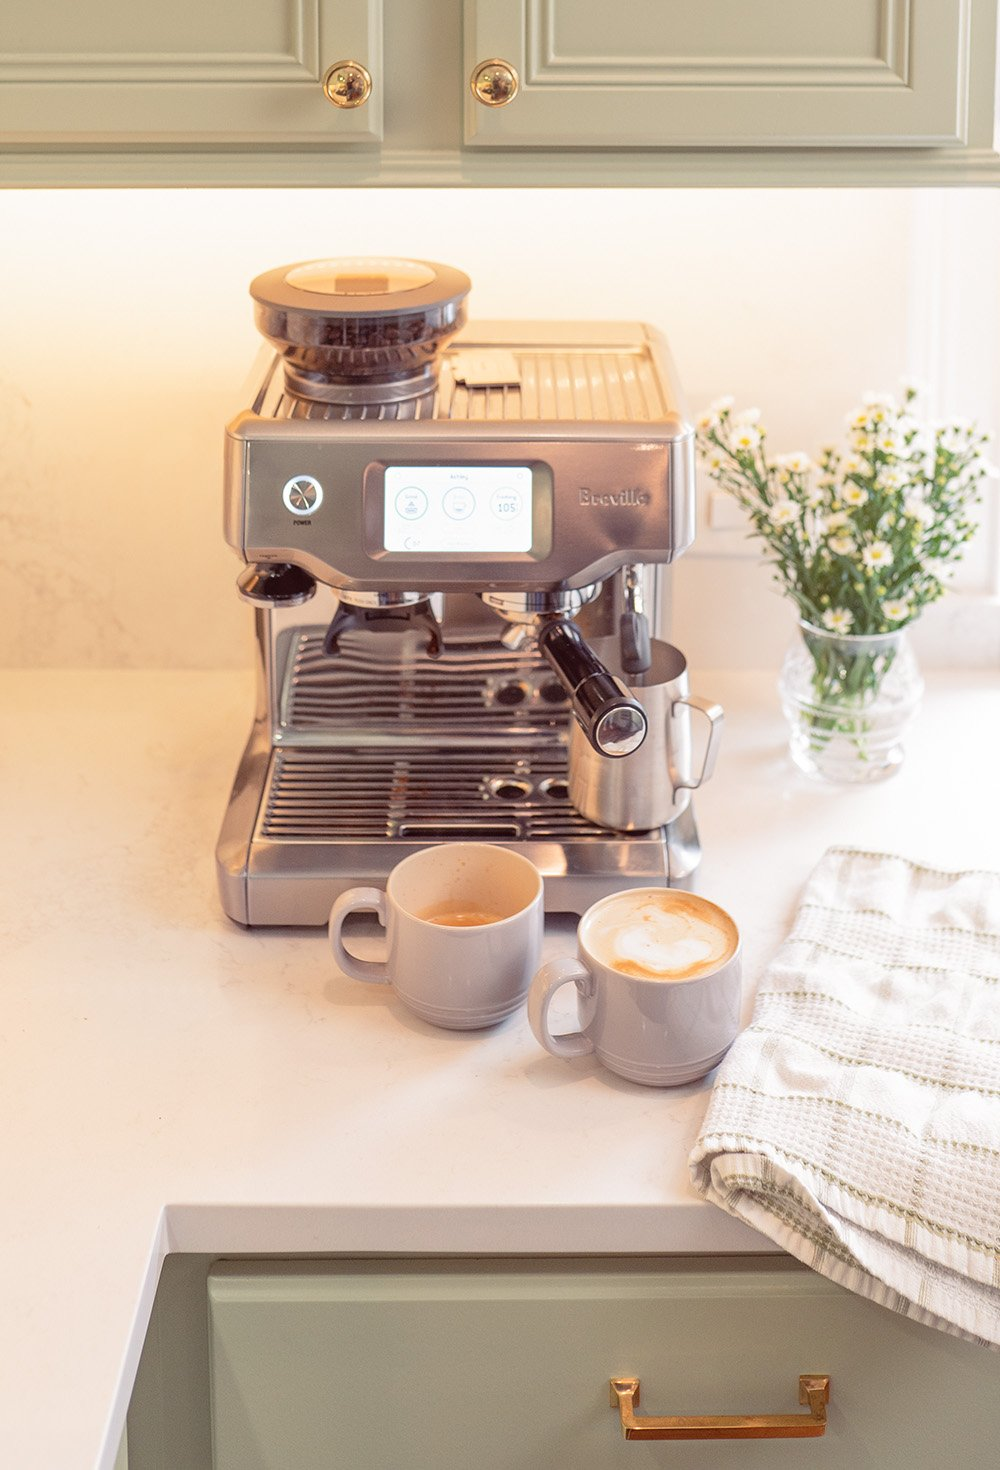 how to make cafe-style coffee at home